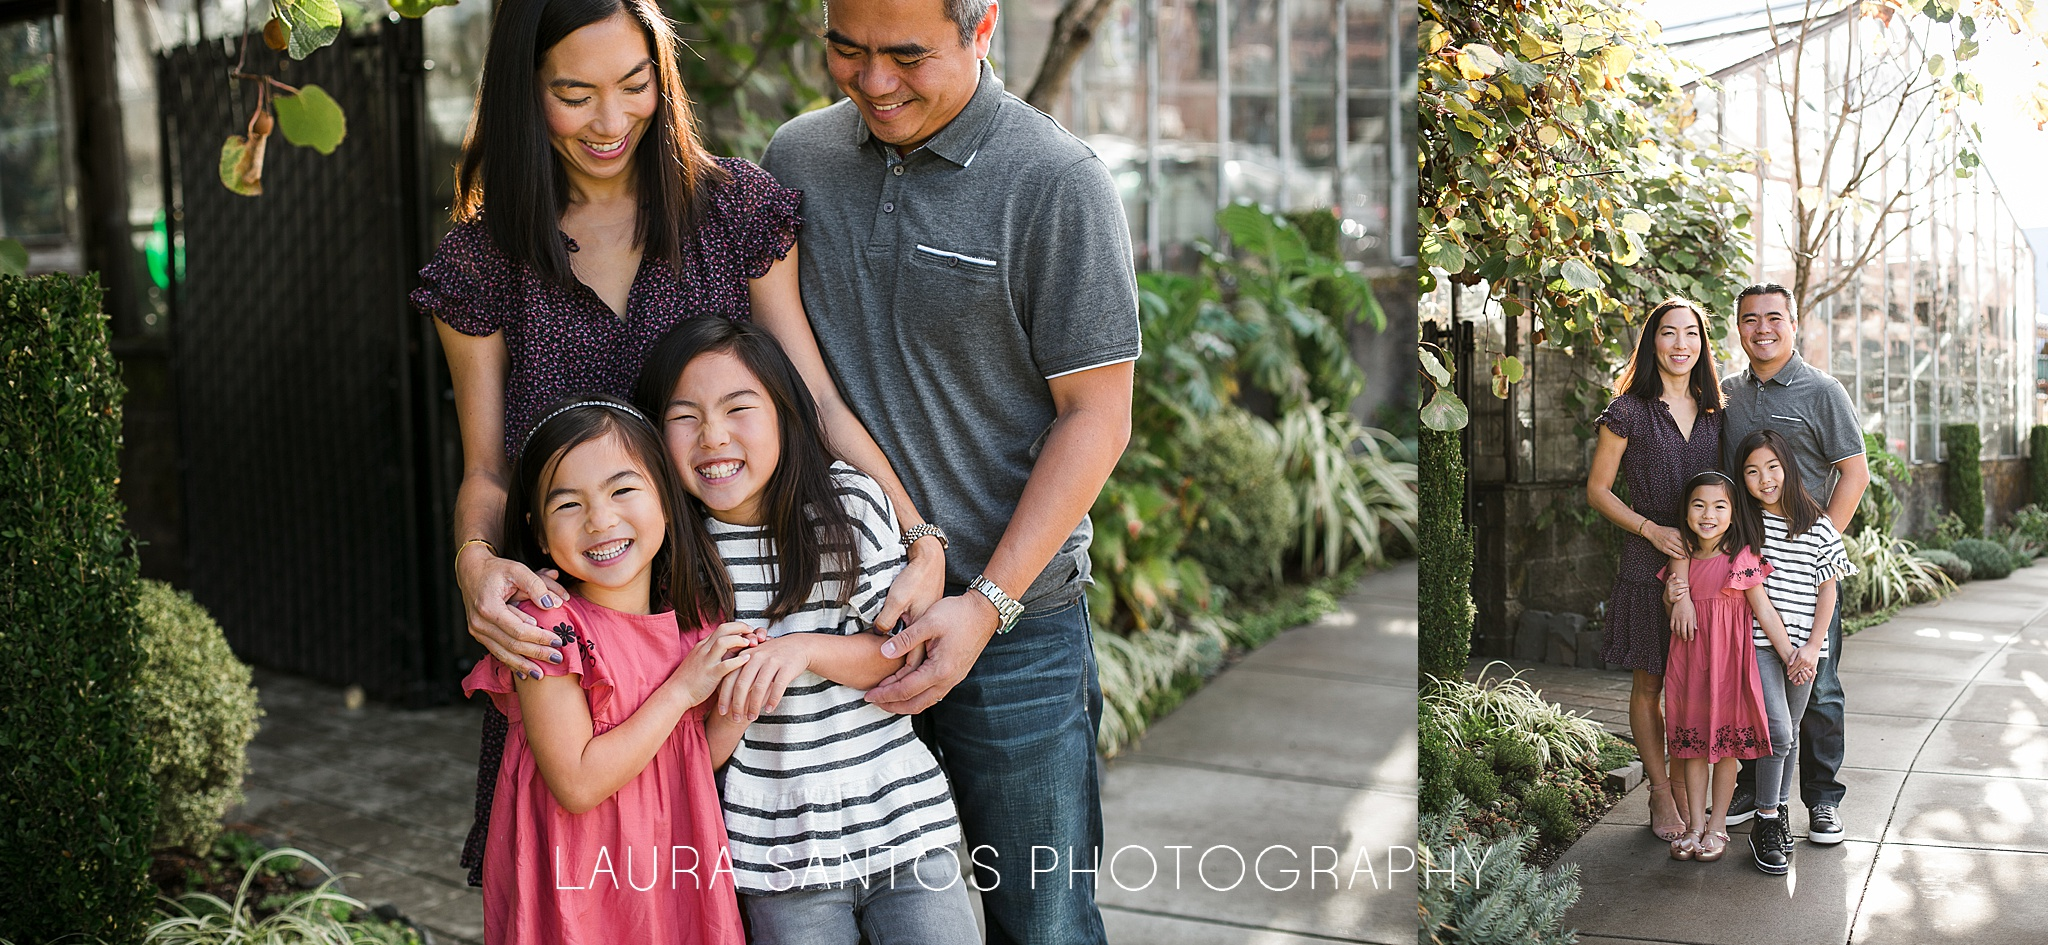 Laura Santos Photography Portland Oregon Family Photographer_0866.jpg